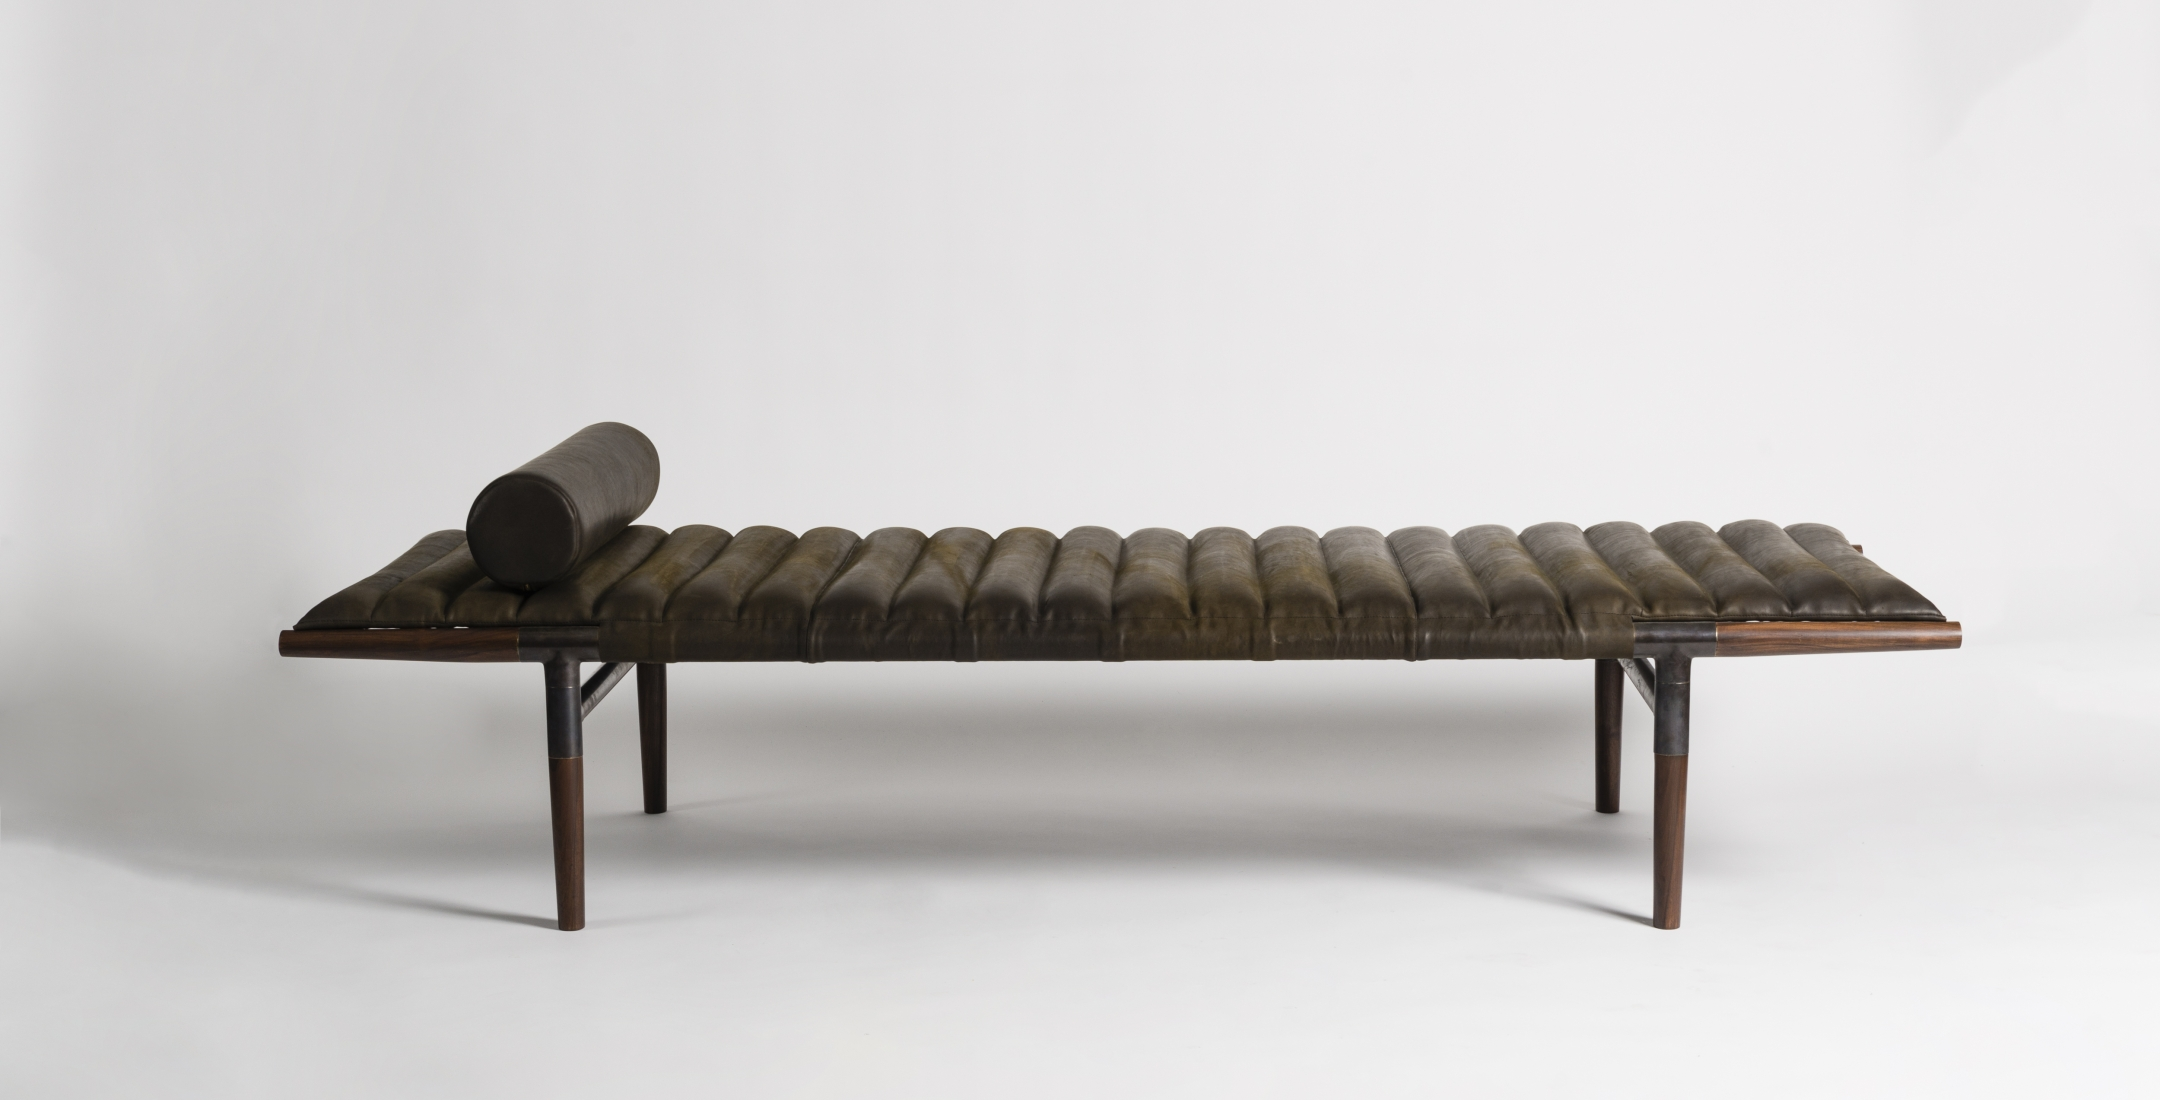 Ben Erickson, Contemporary Daybed, United States, 2016